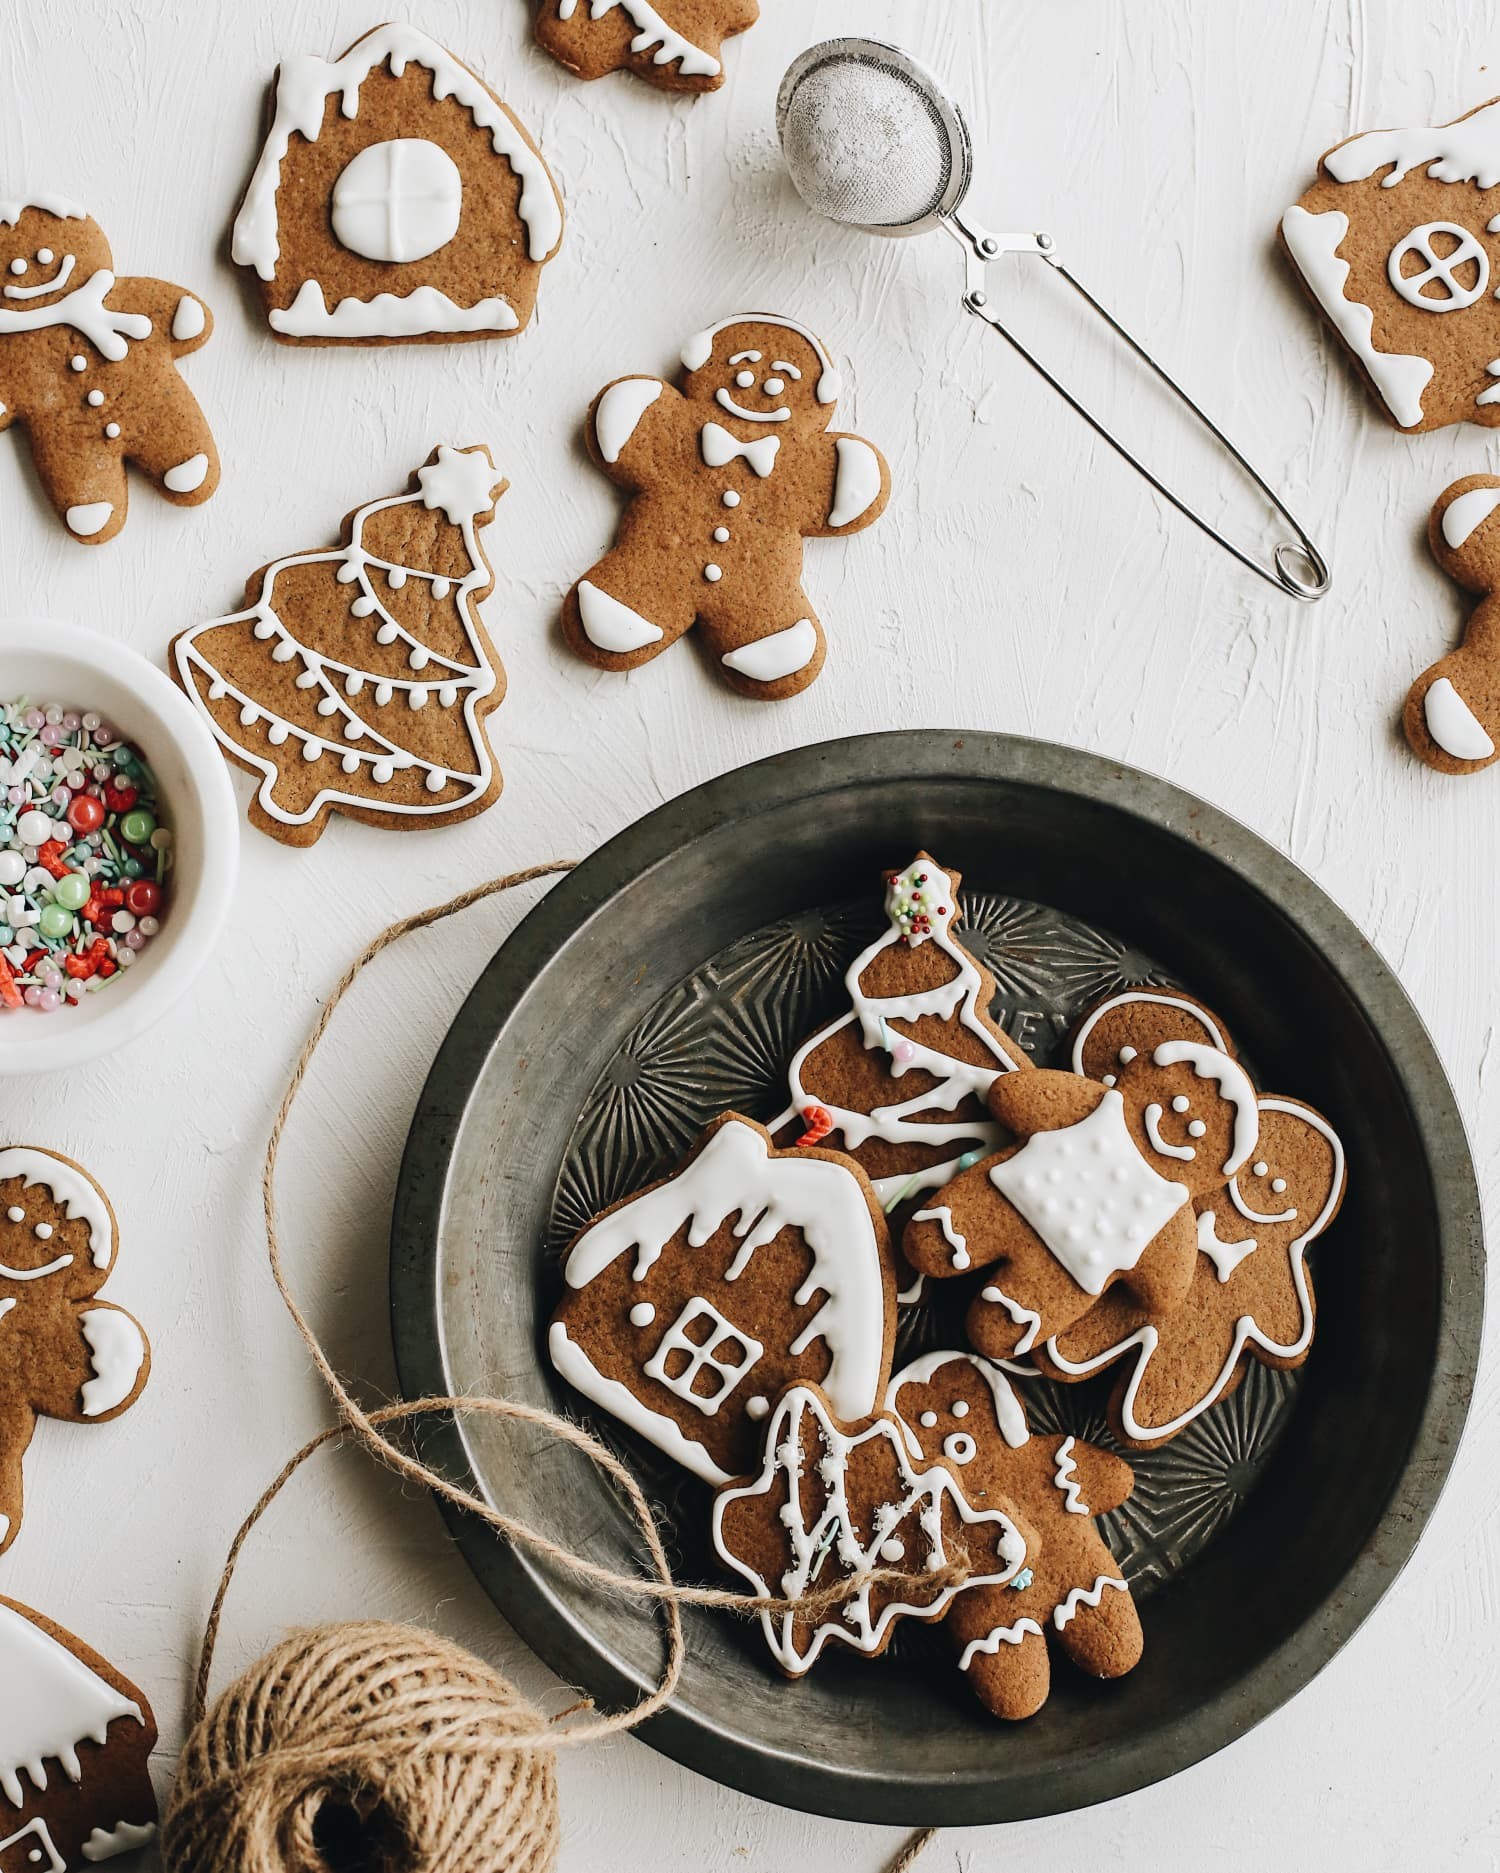 85+ Easy and Delicious Cookies to Bake This Holiday Season